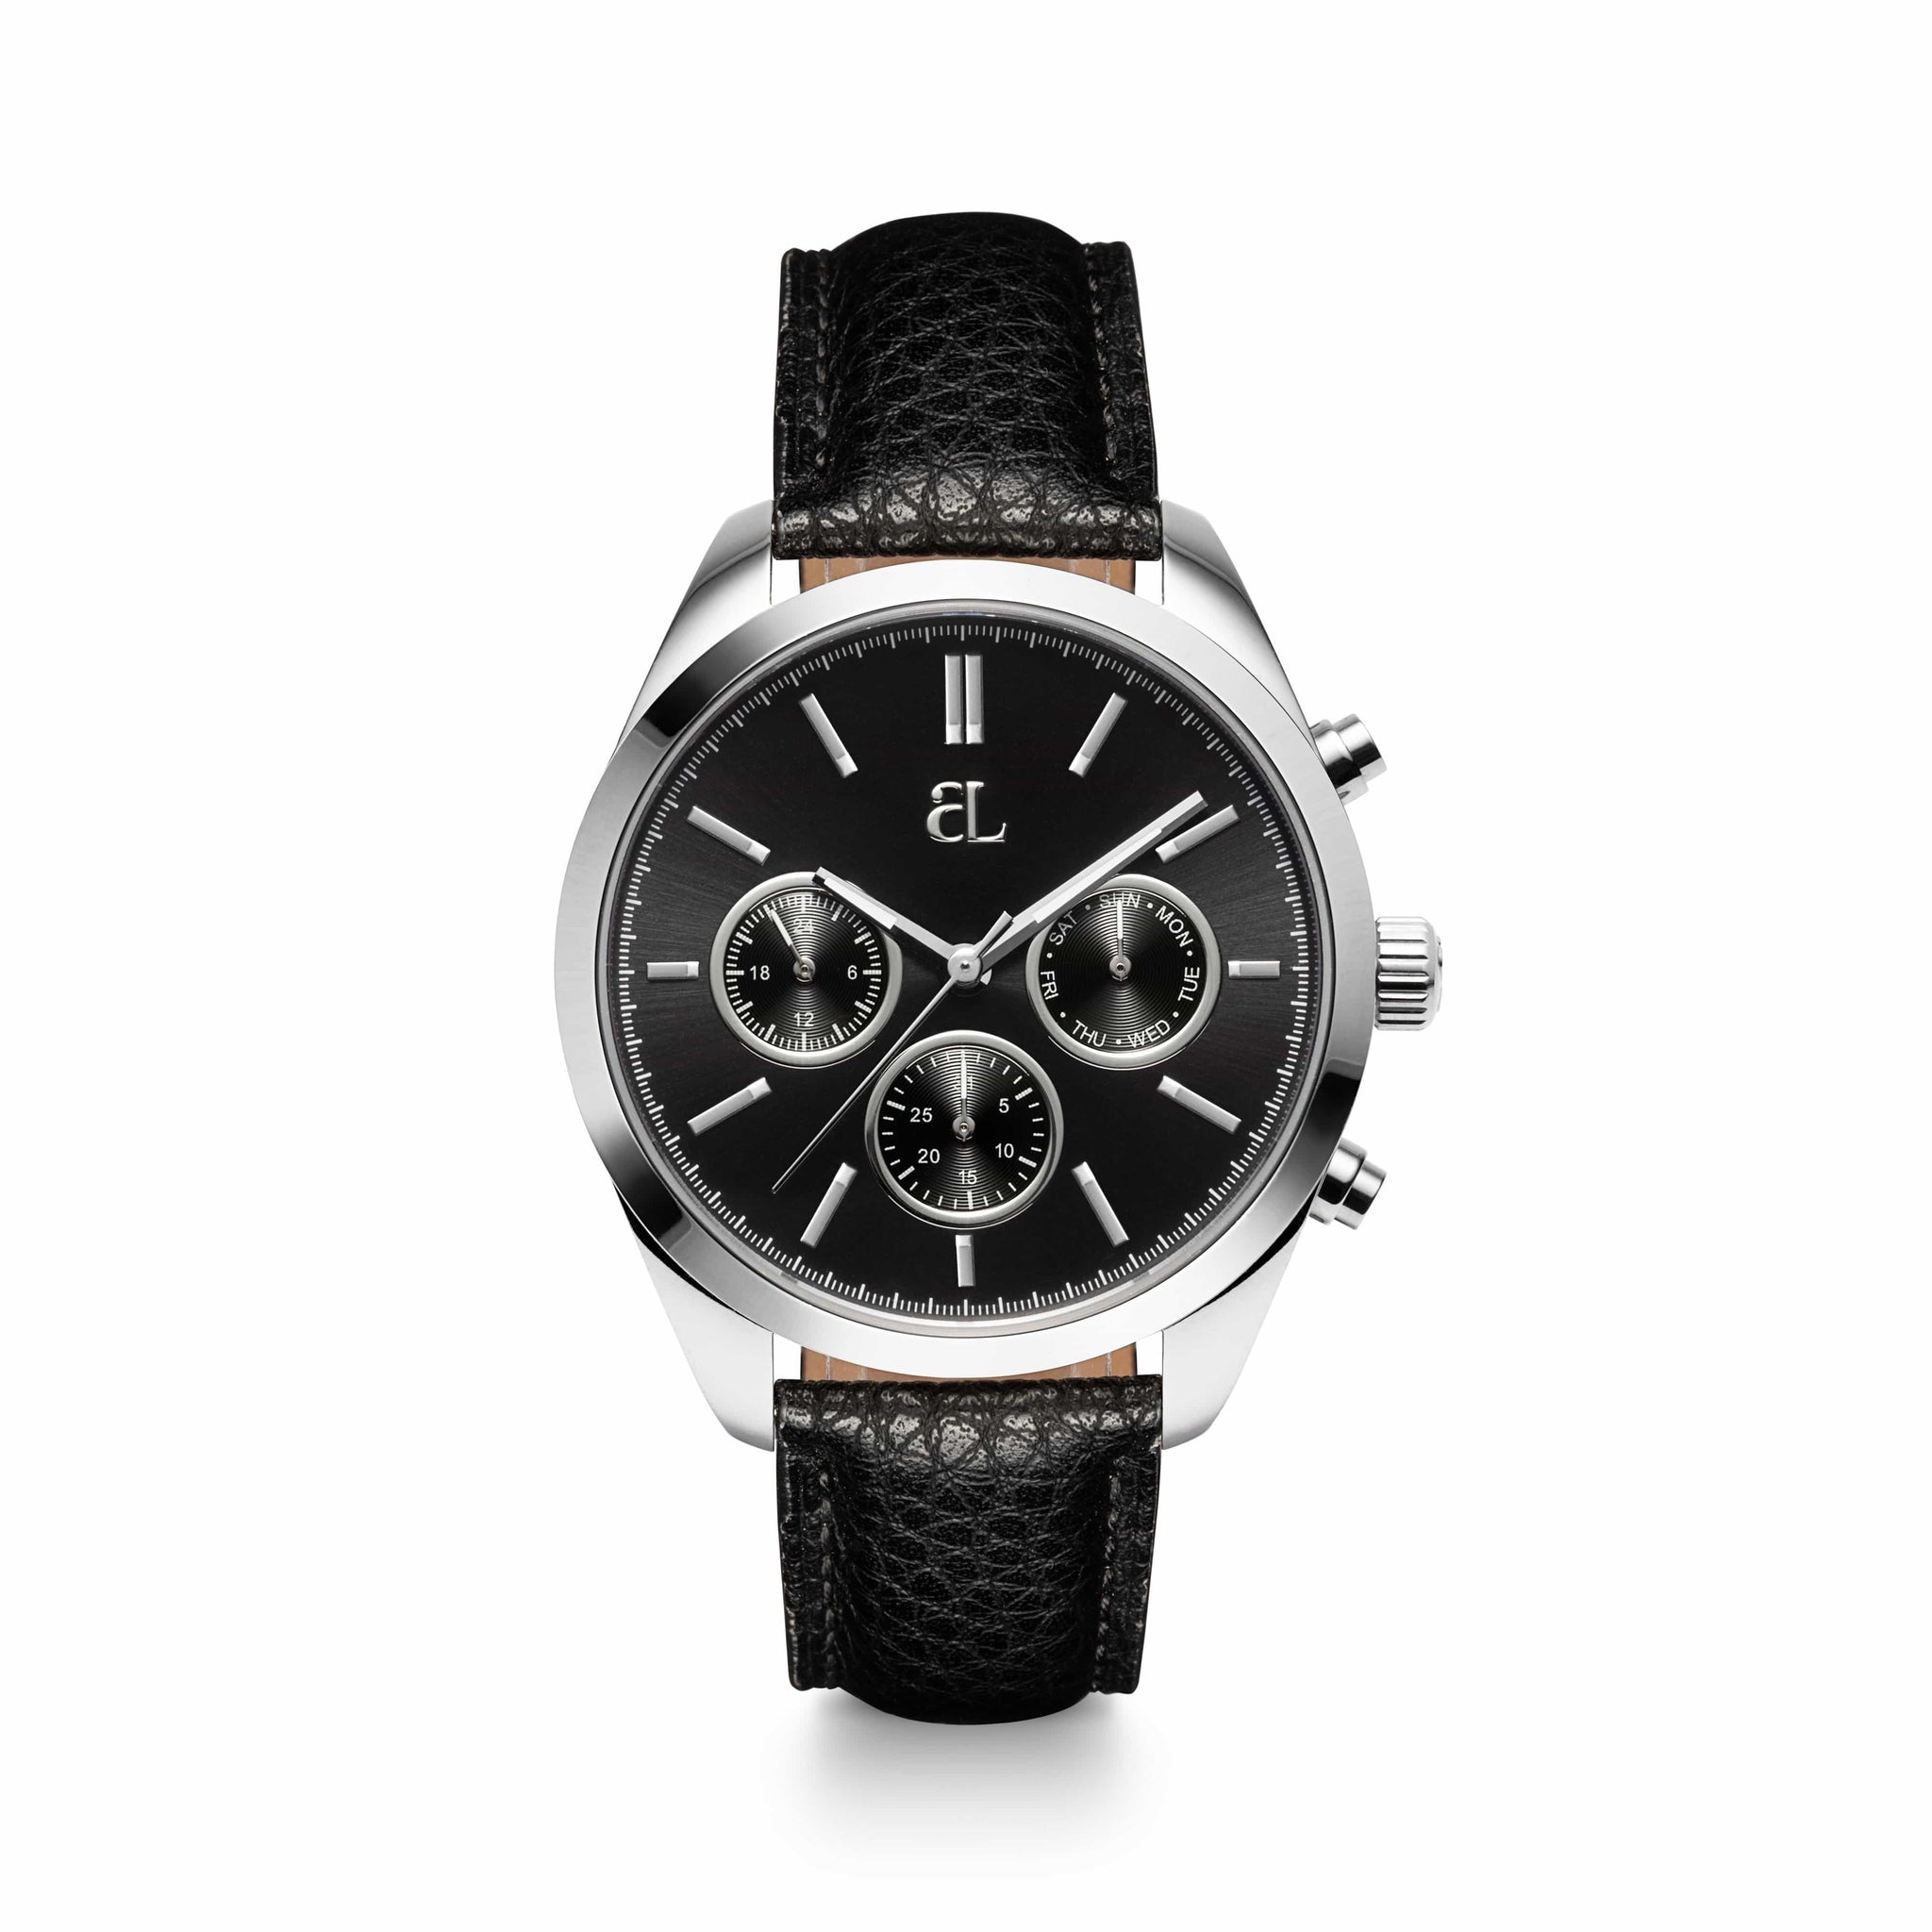 Jet Black Chronograph Gun 40 Leather